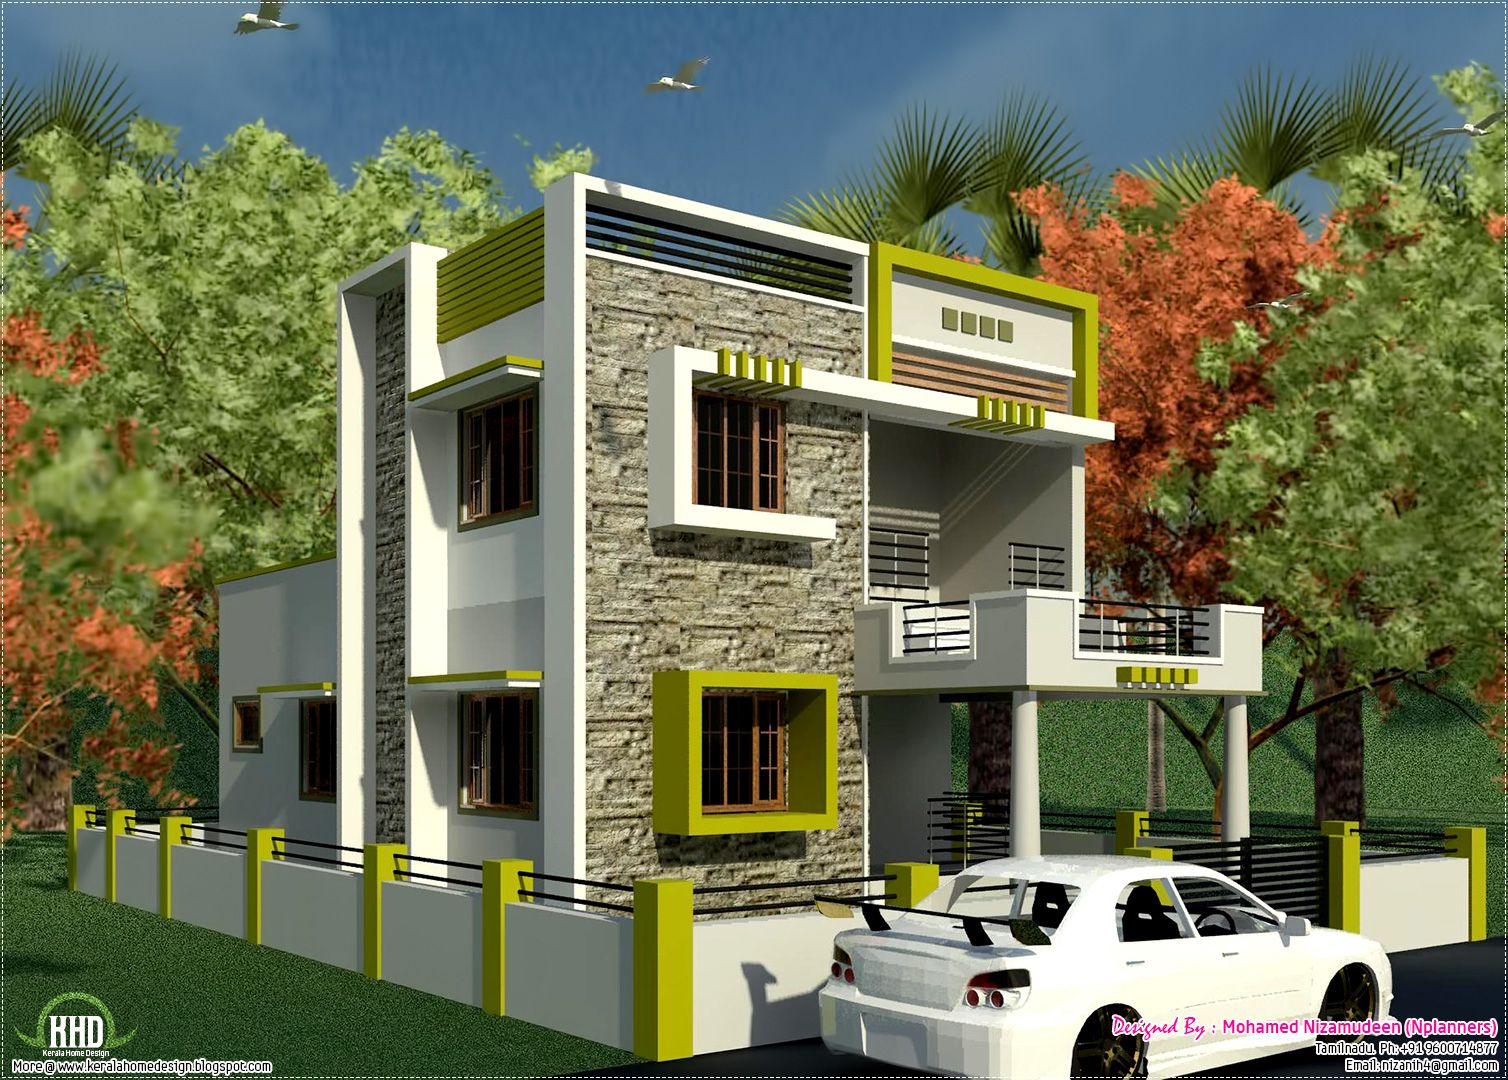 Small house with car park design tobfav com ideas for for Home design exterior ideas in india